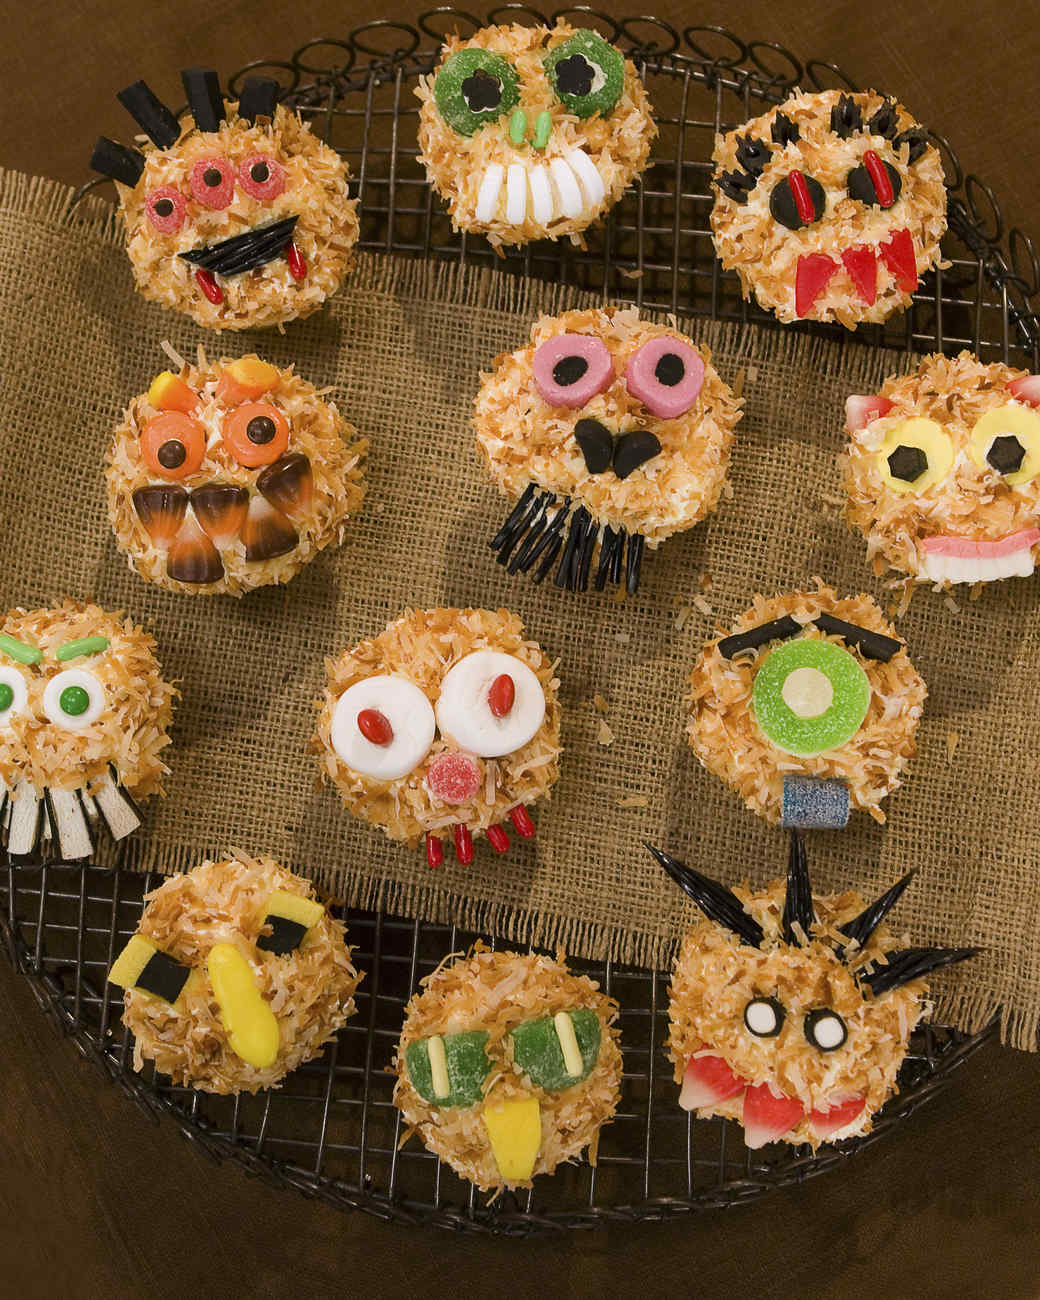 Halloween cupcake recipes martha stewart - Halloween decorations for cupcakes ...